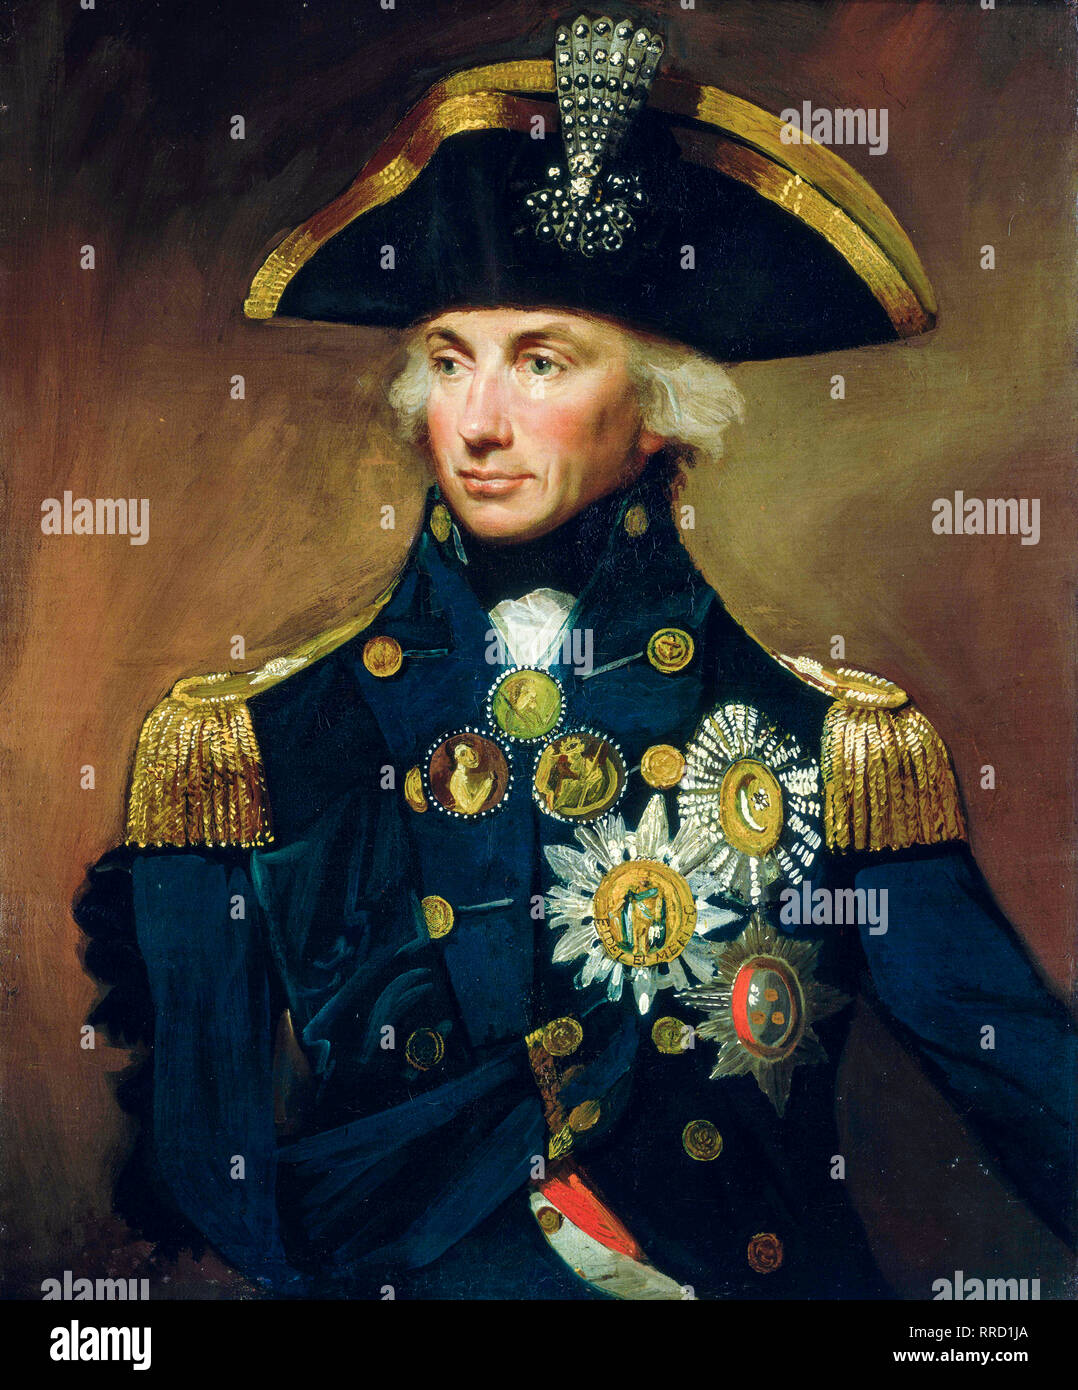 Vice Admiral Sir Horatio Nelson, Lord Nelson, portrait painting, 1799 - Stock Image